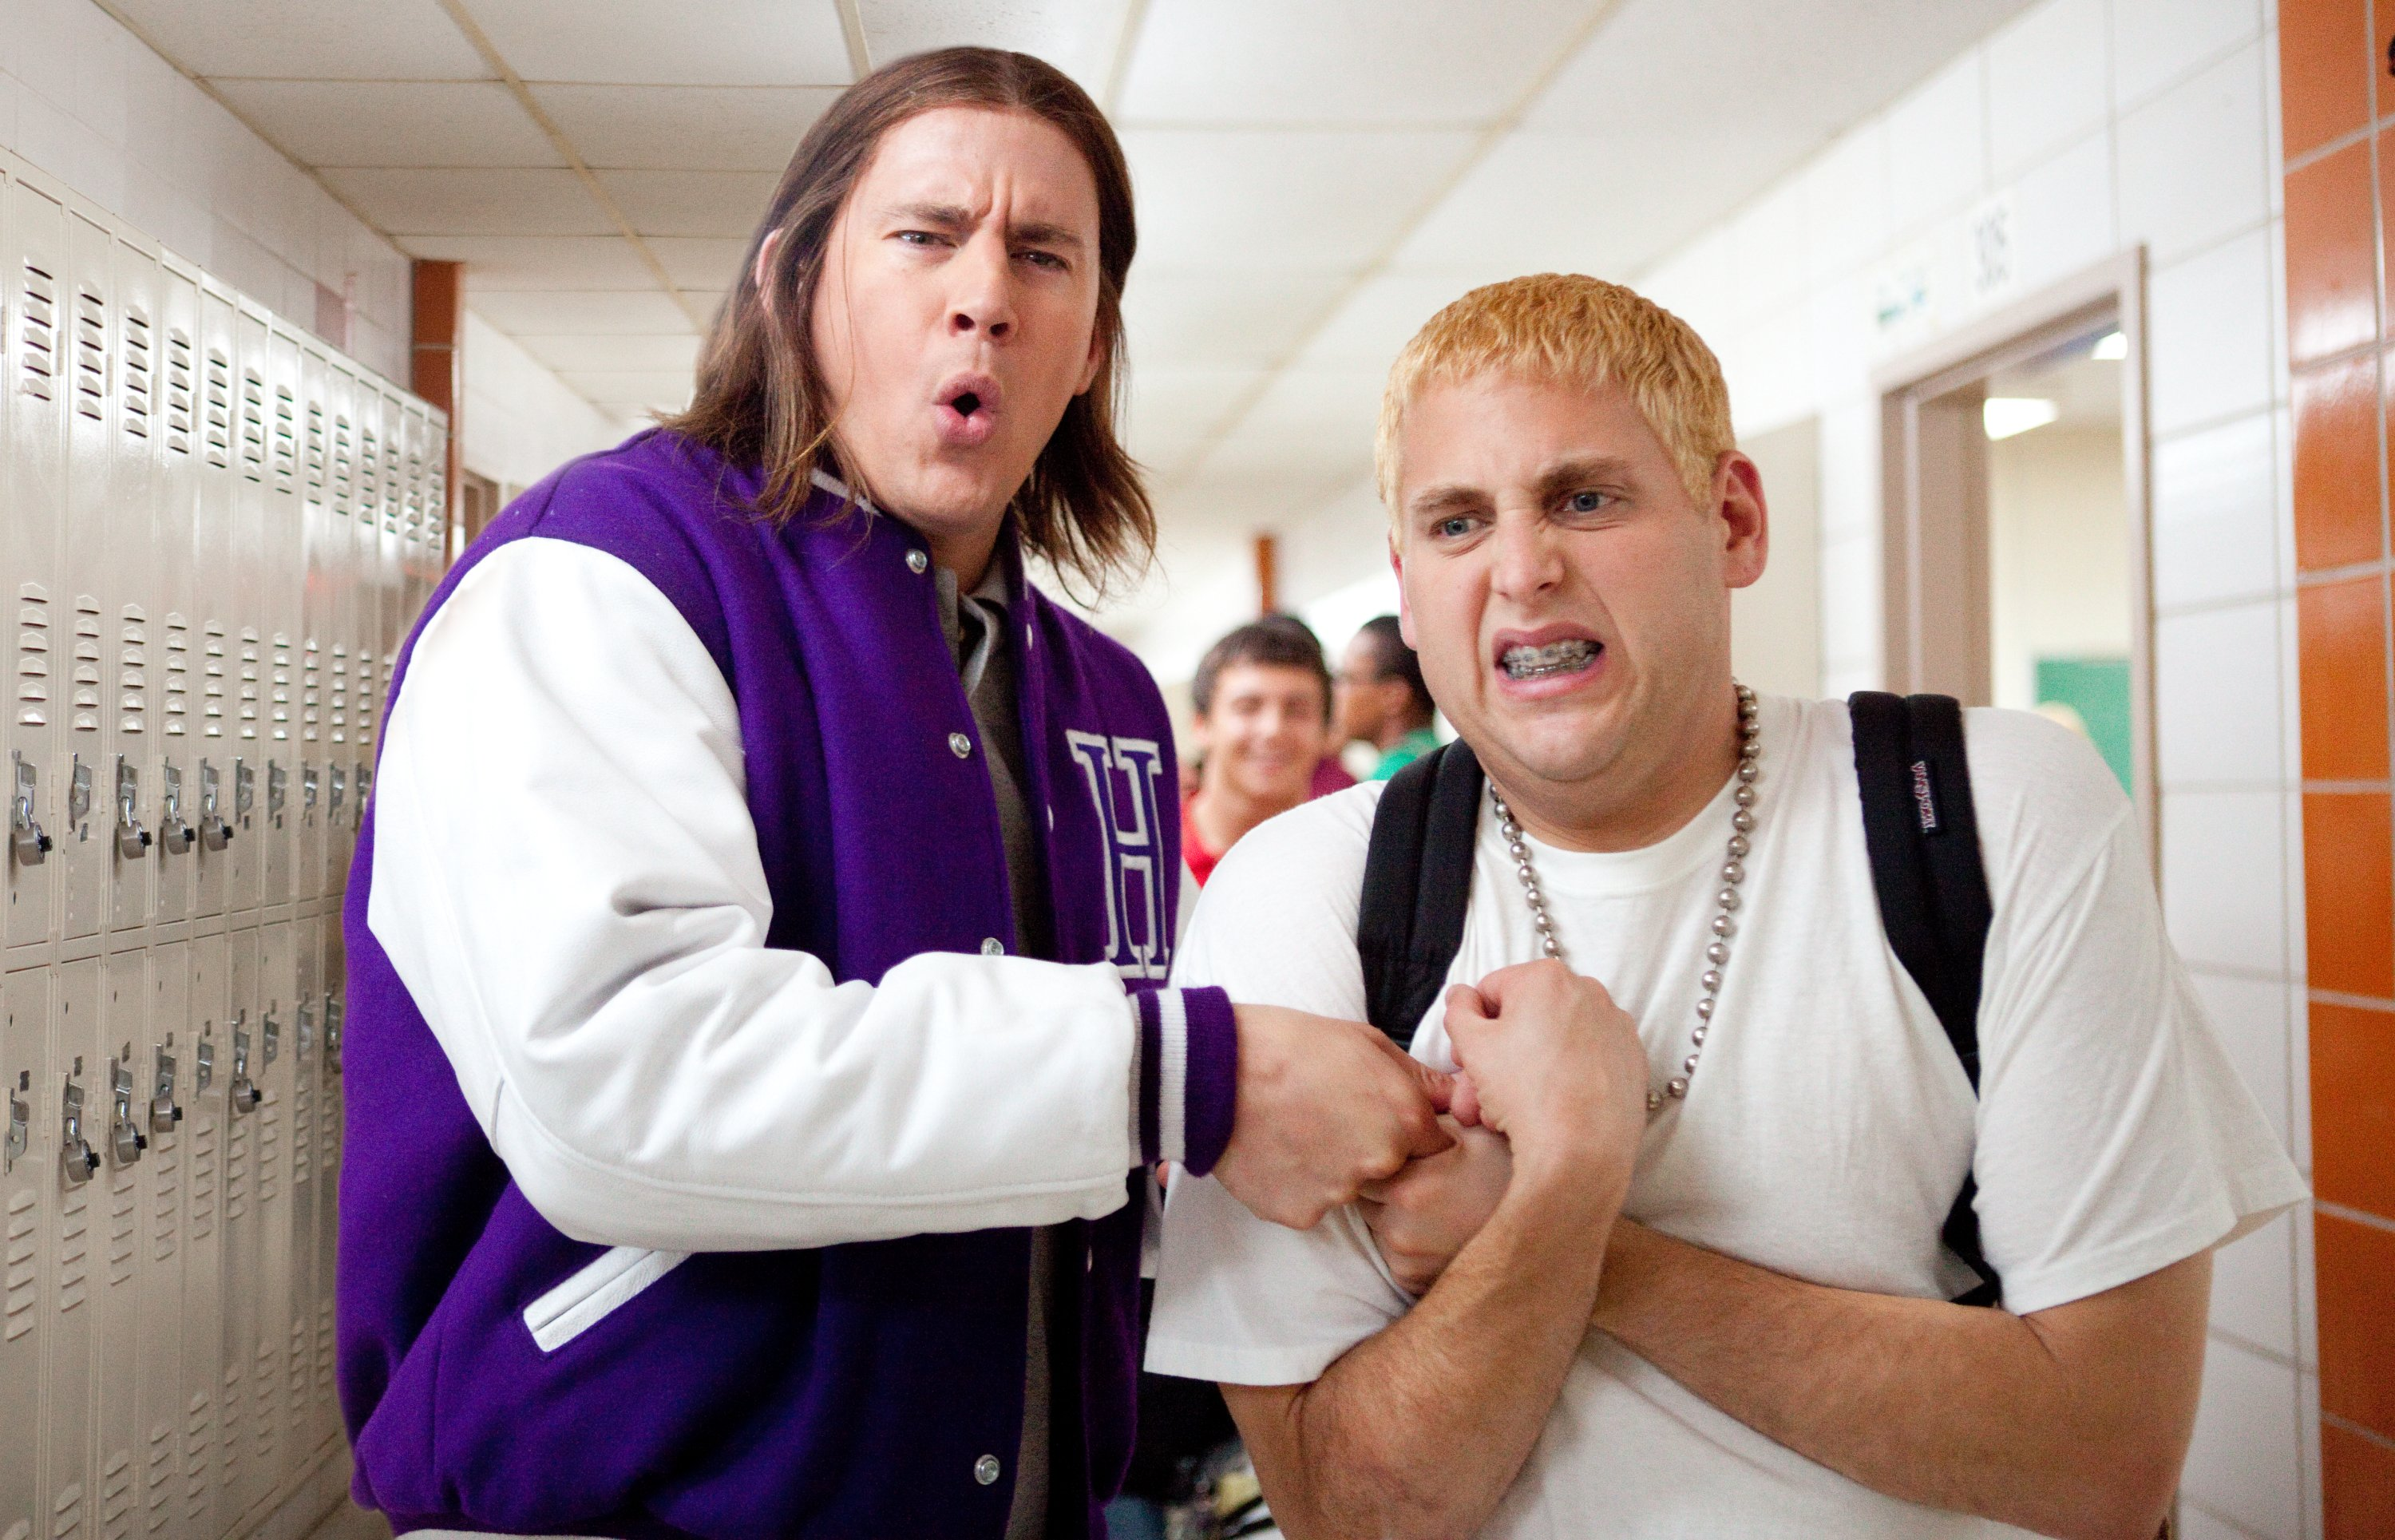 '22 Jump Street' Starts Shooting; See the First Pics From the Set – /Film